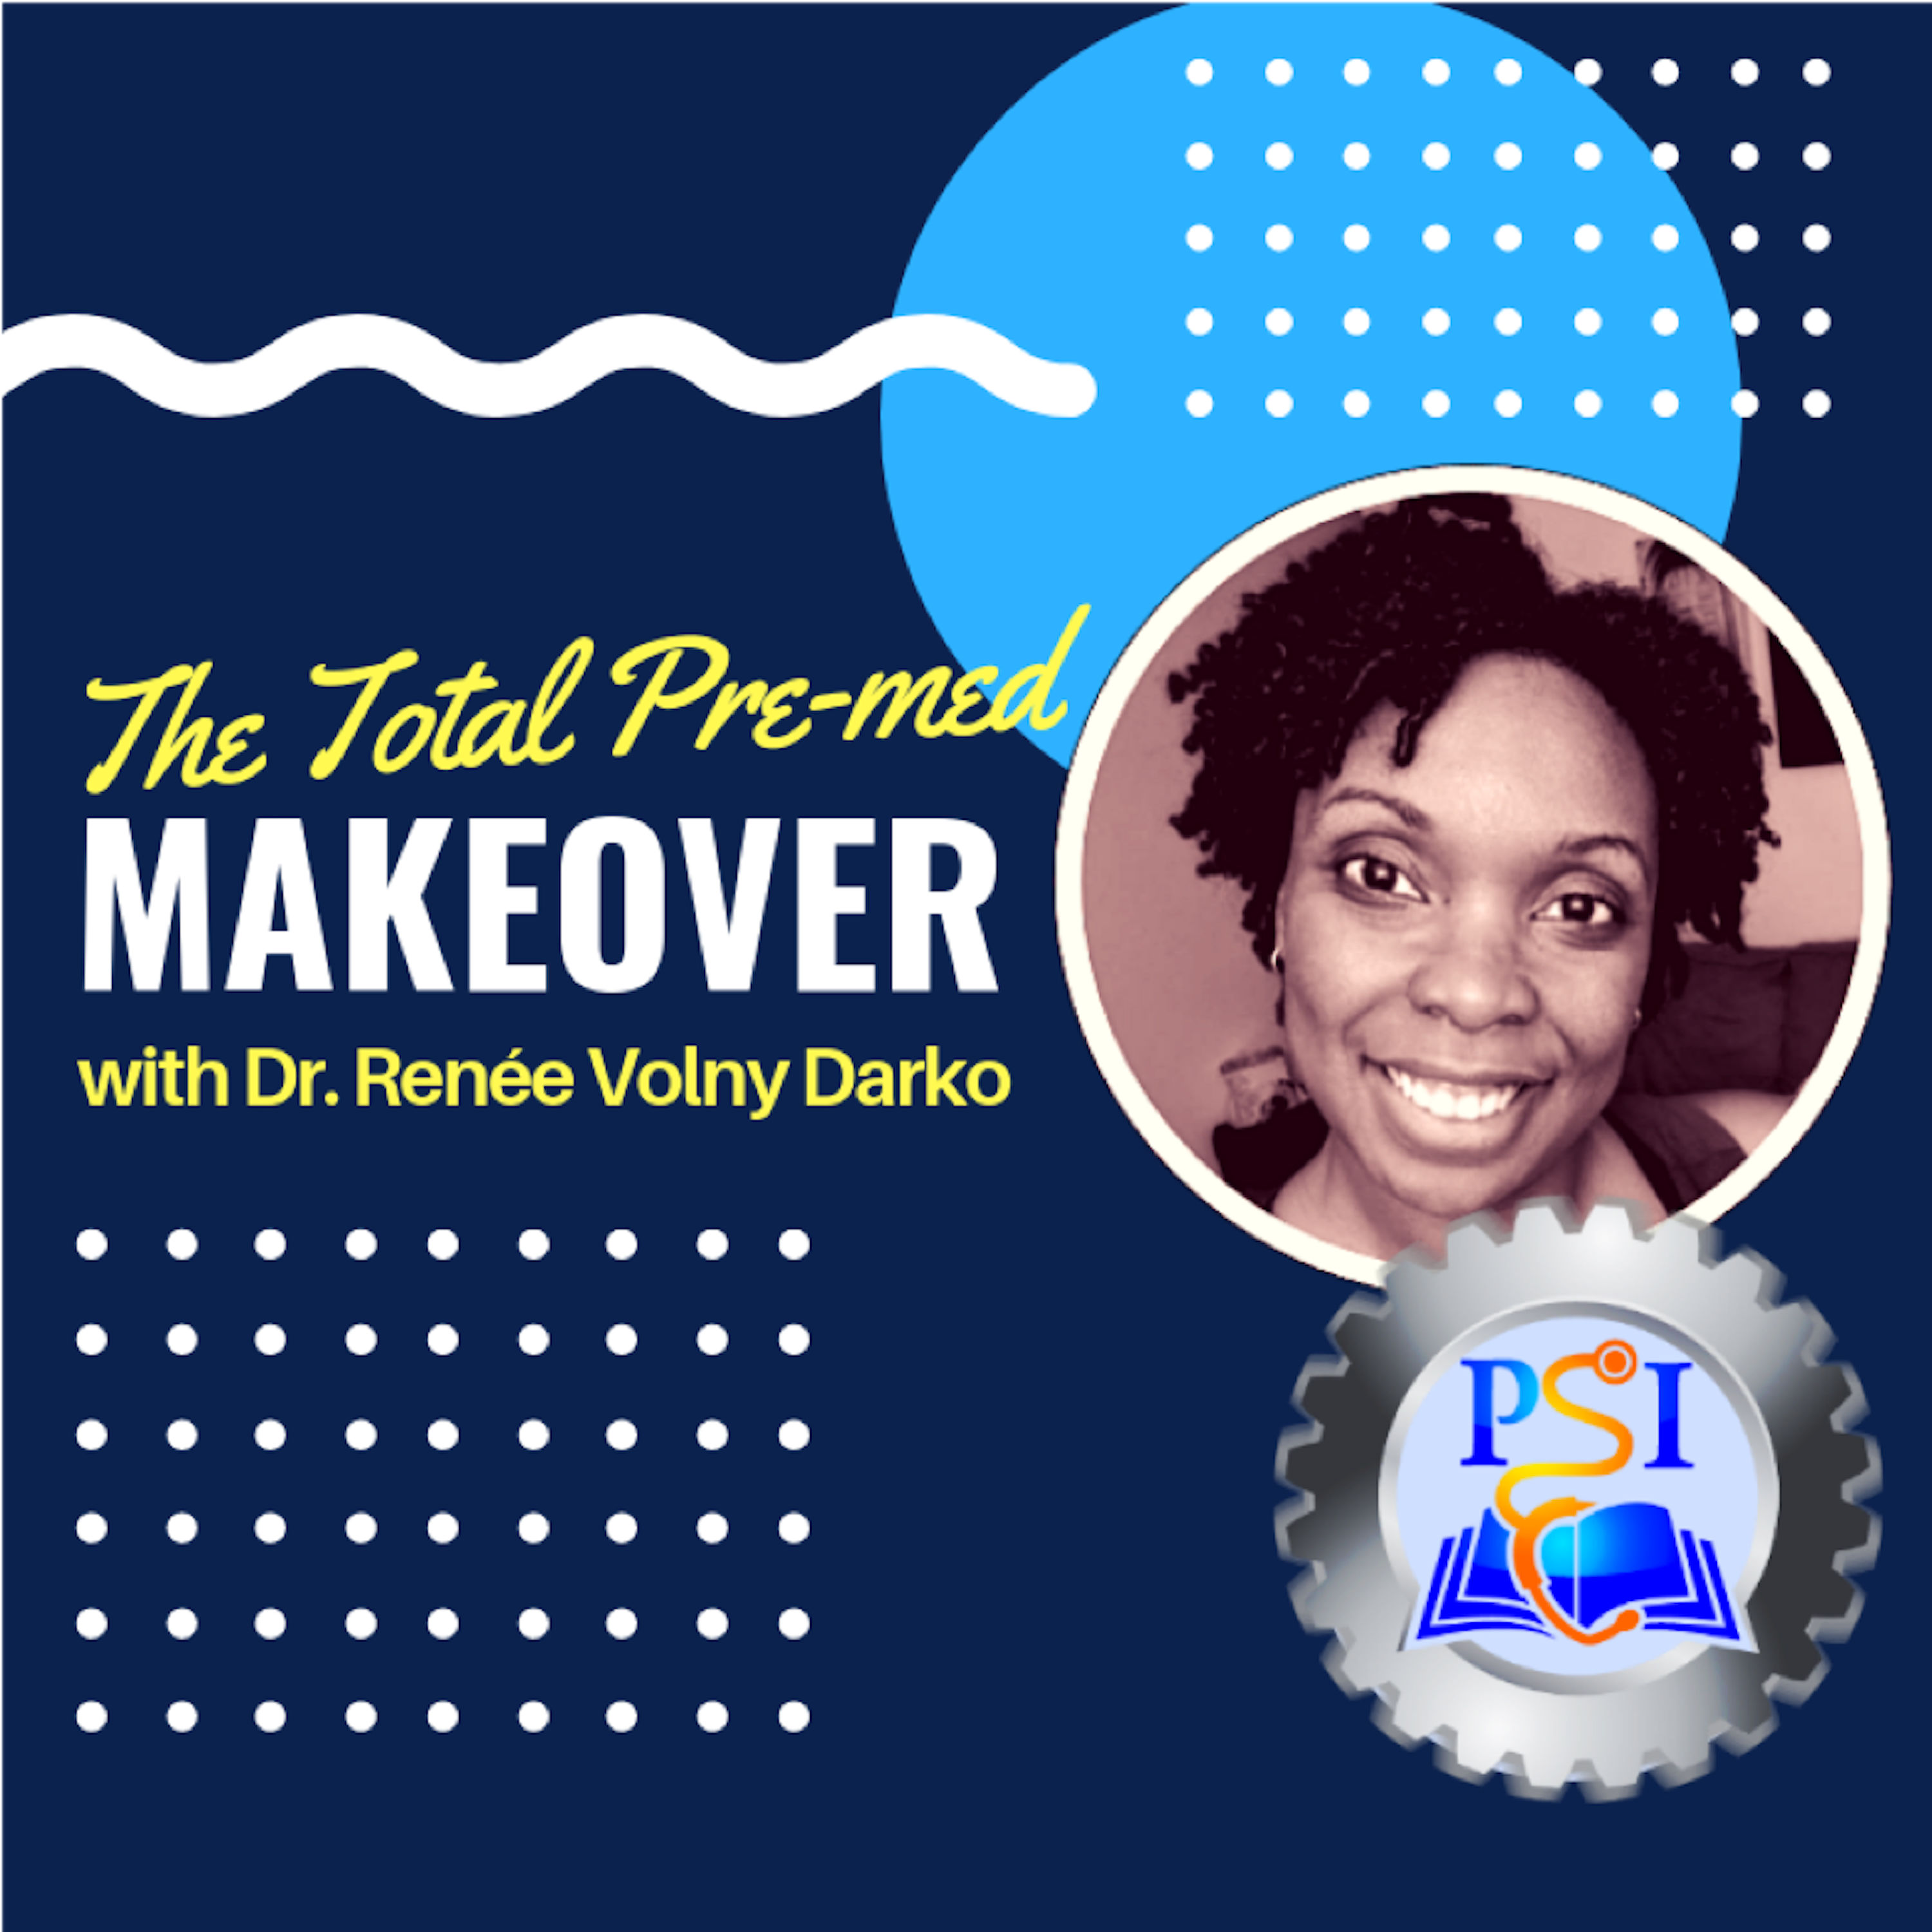 The Total Pre-med Makeover show image